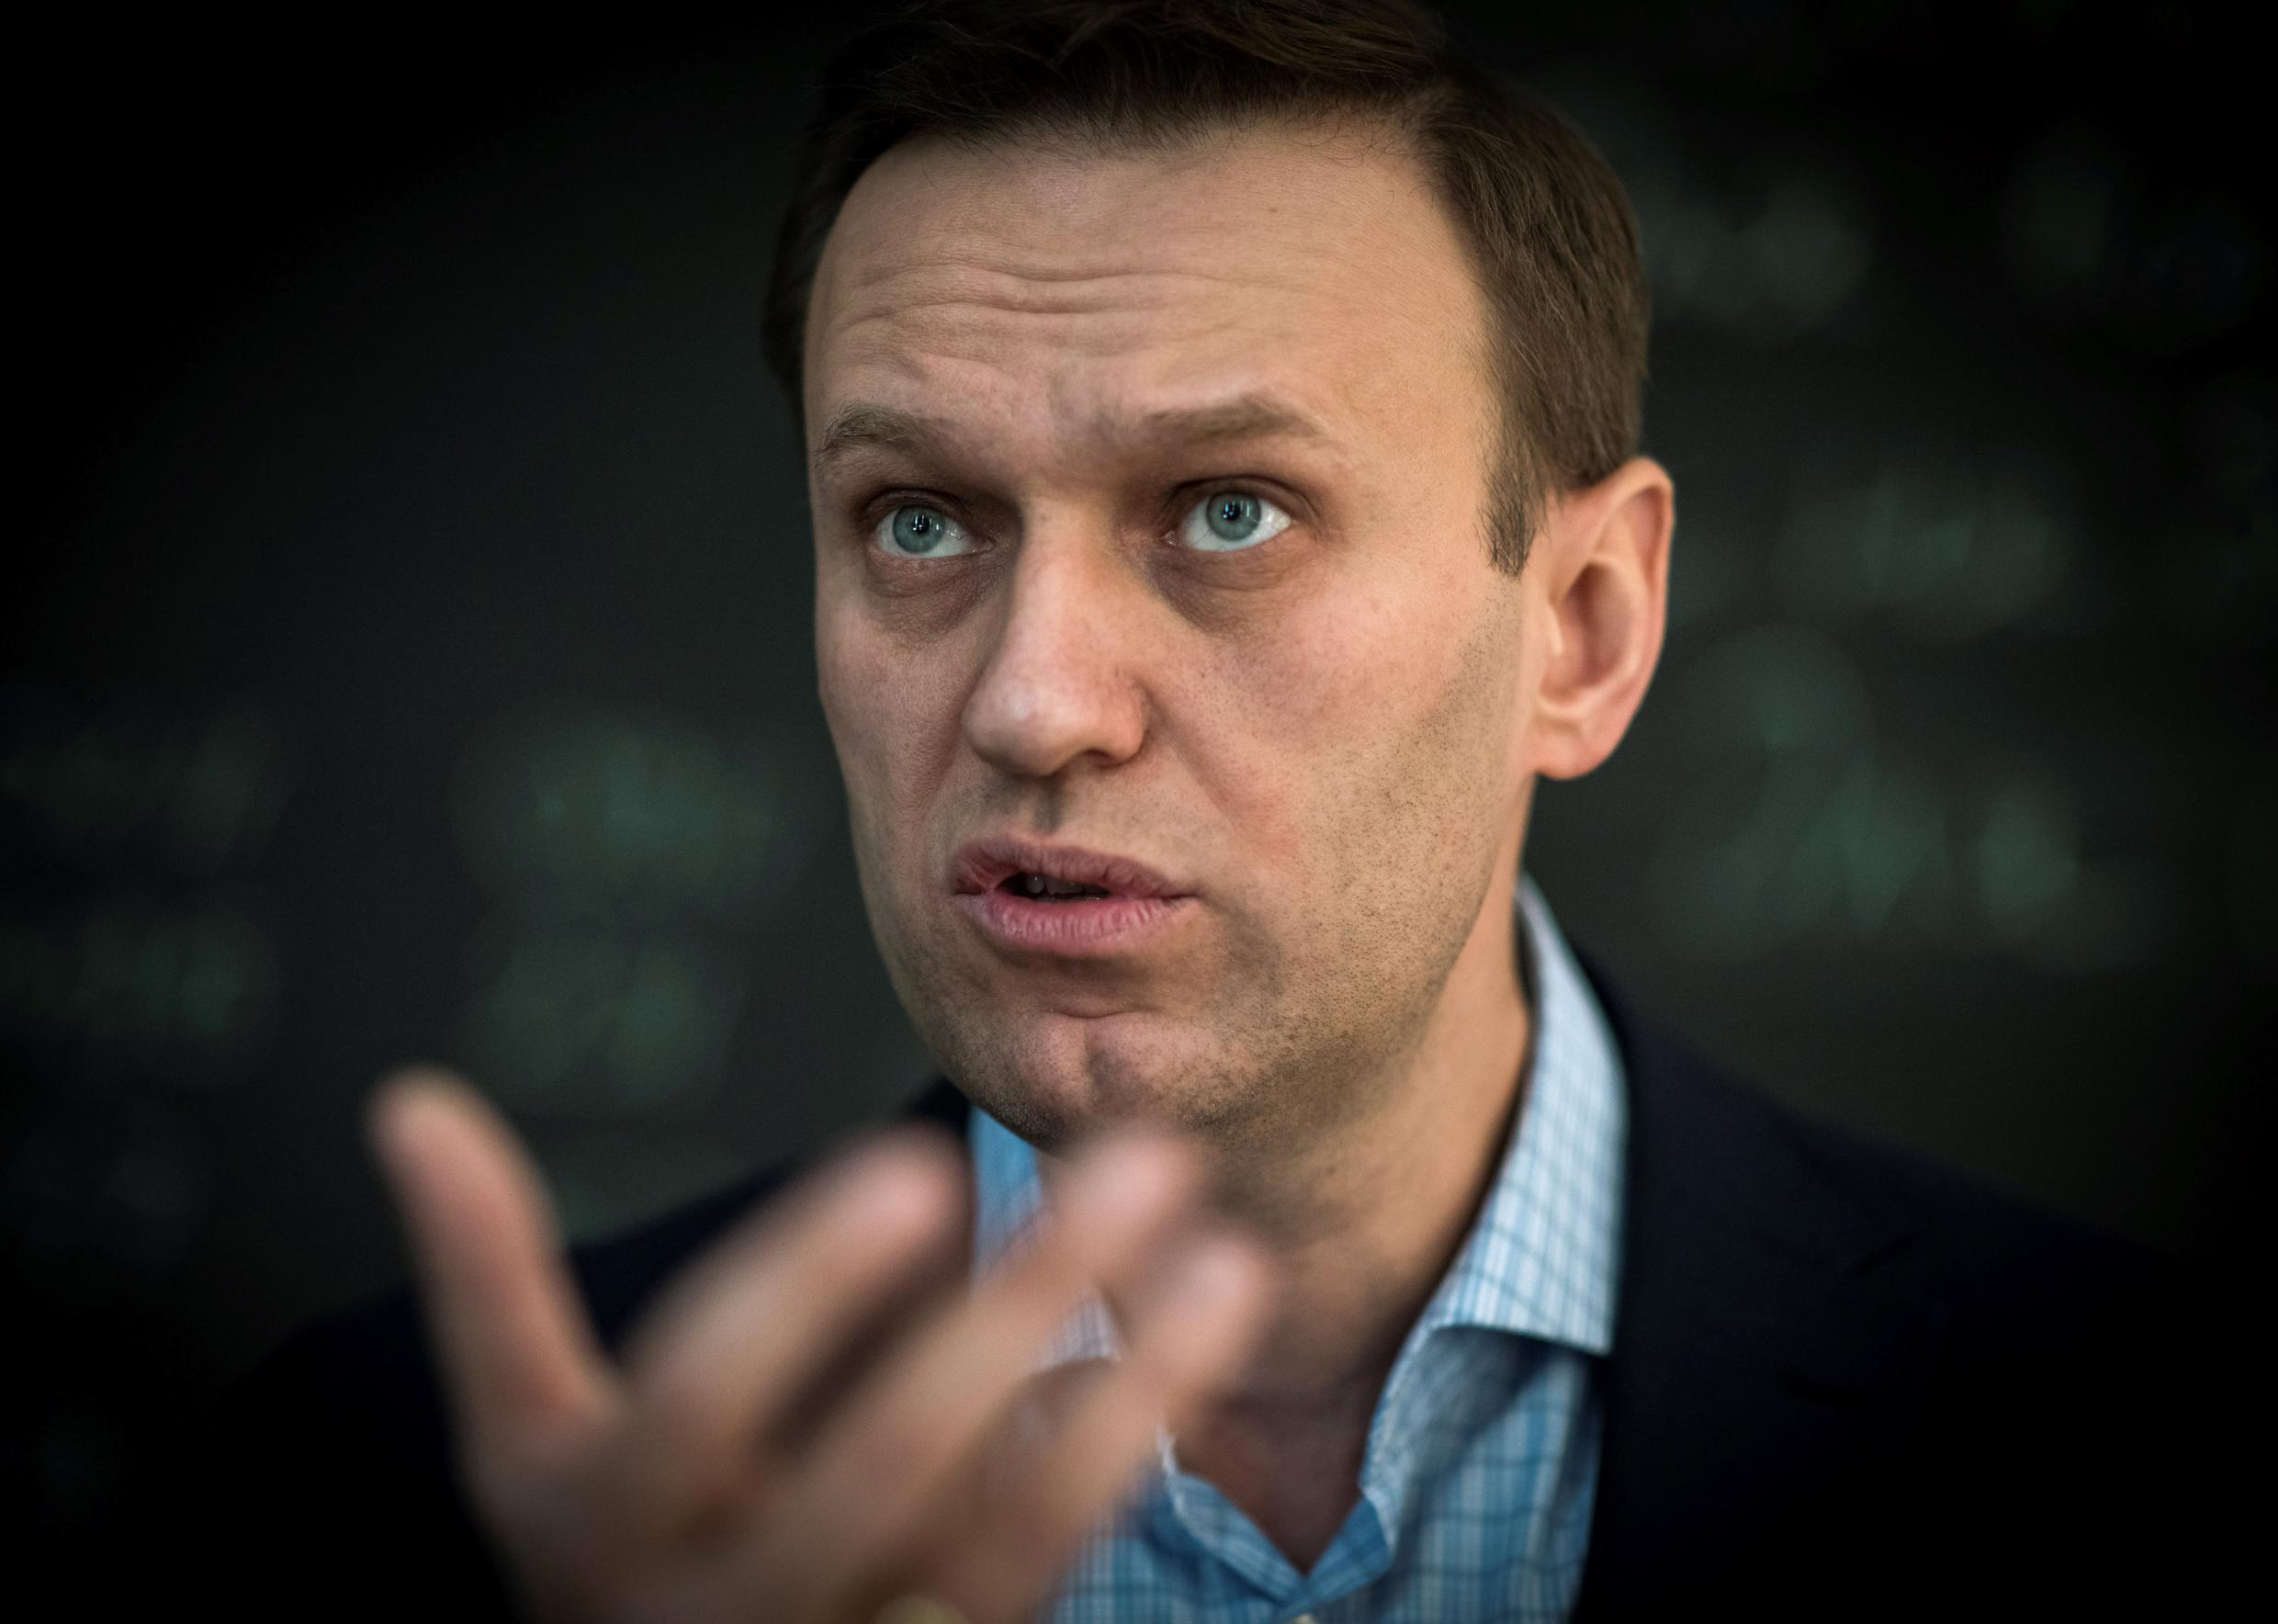 Navalny has made many enemies with his anti-corruption investigations